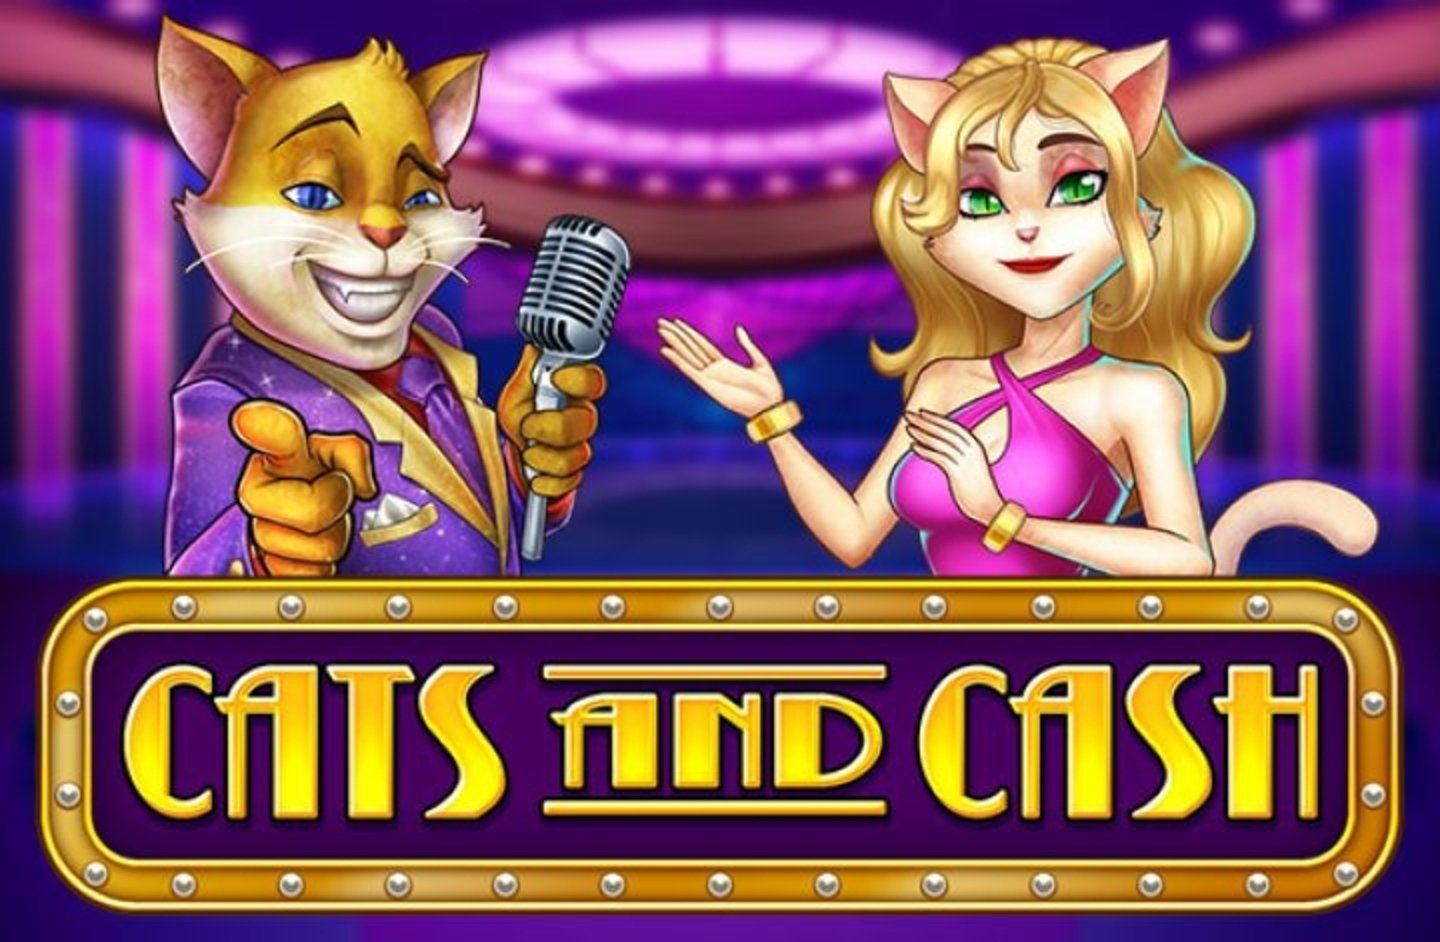 The Cats and Cash Online Slot Demo Game by Play'n Go